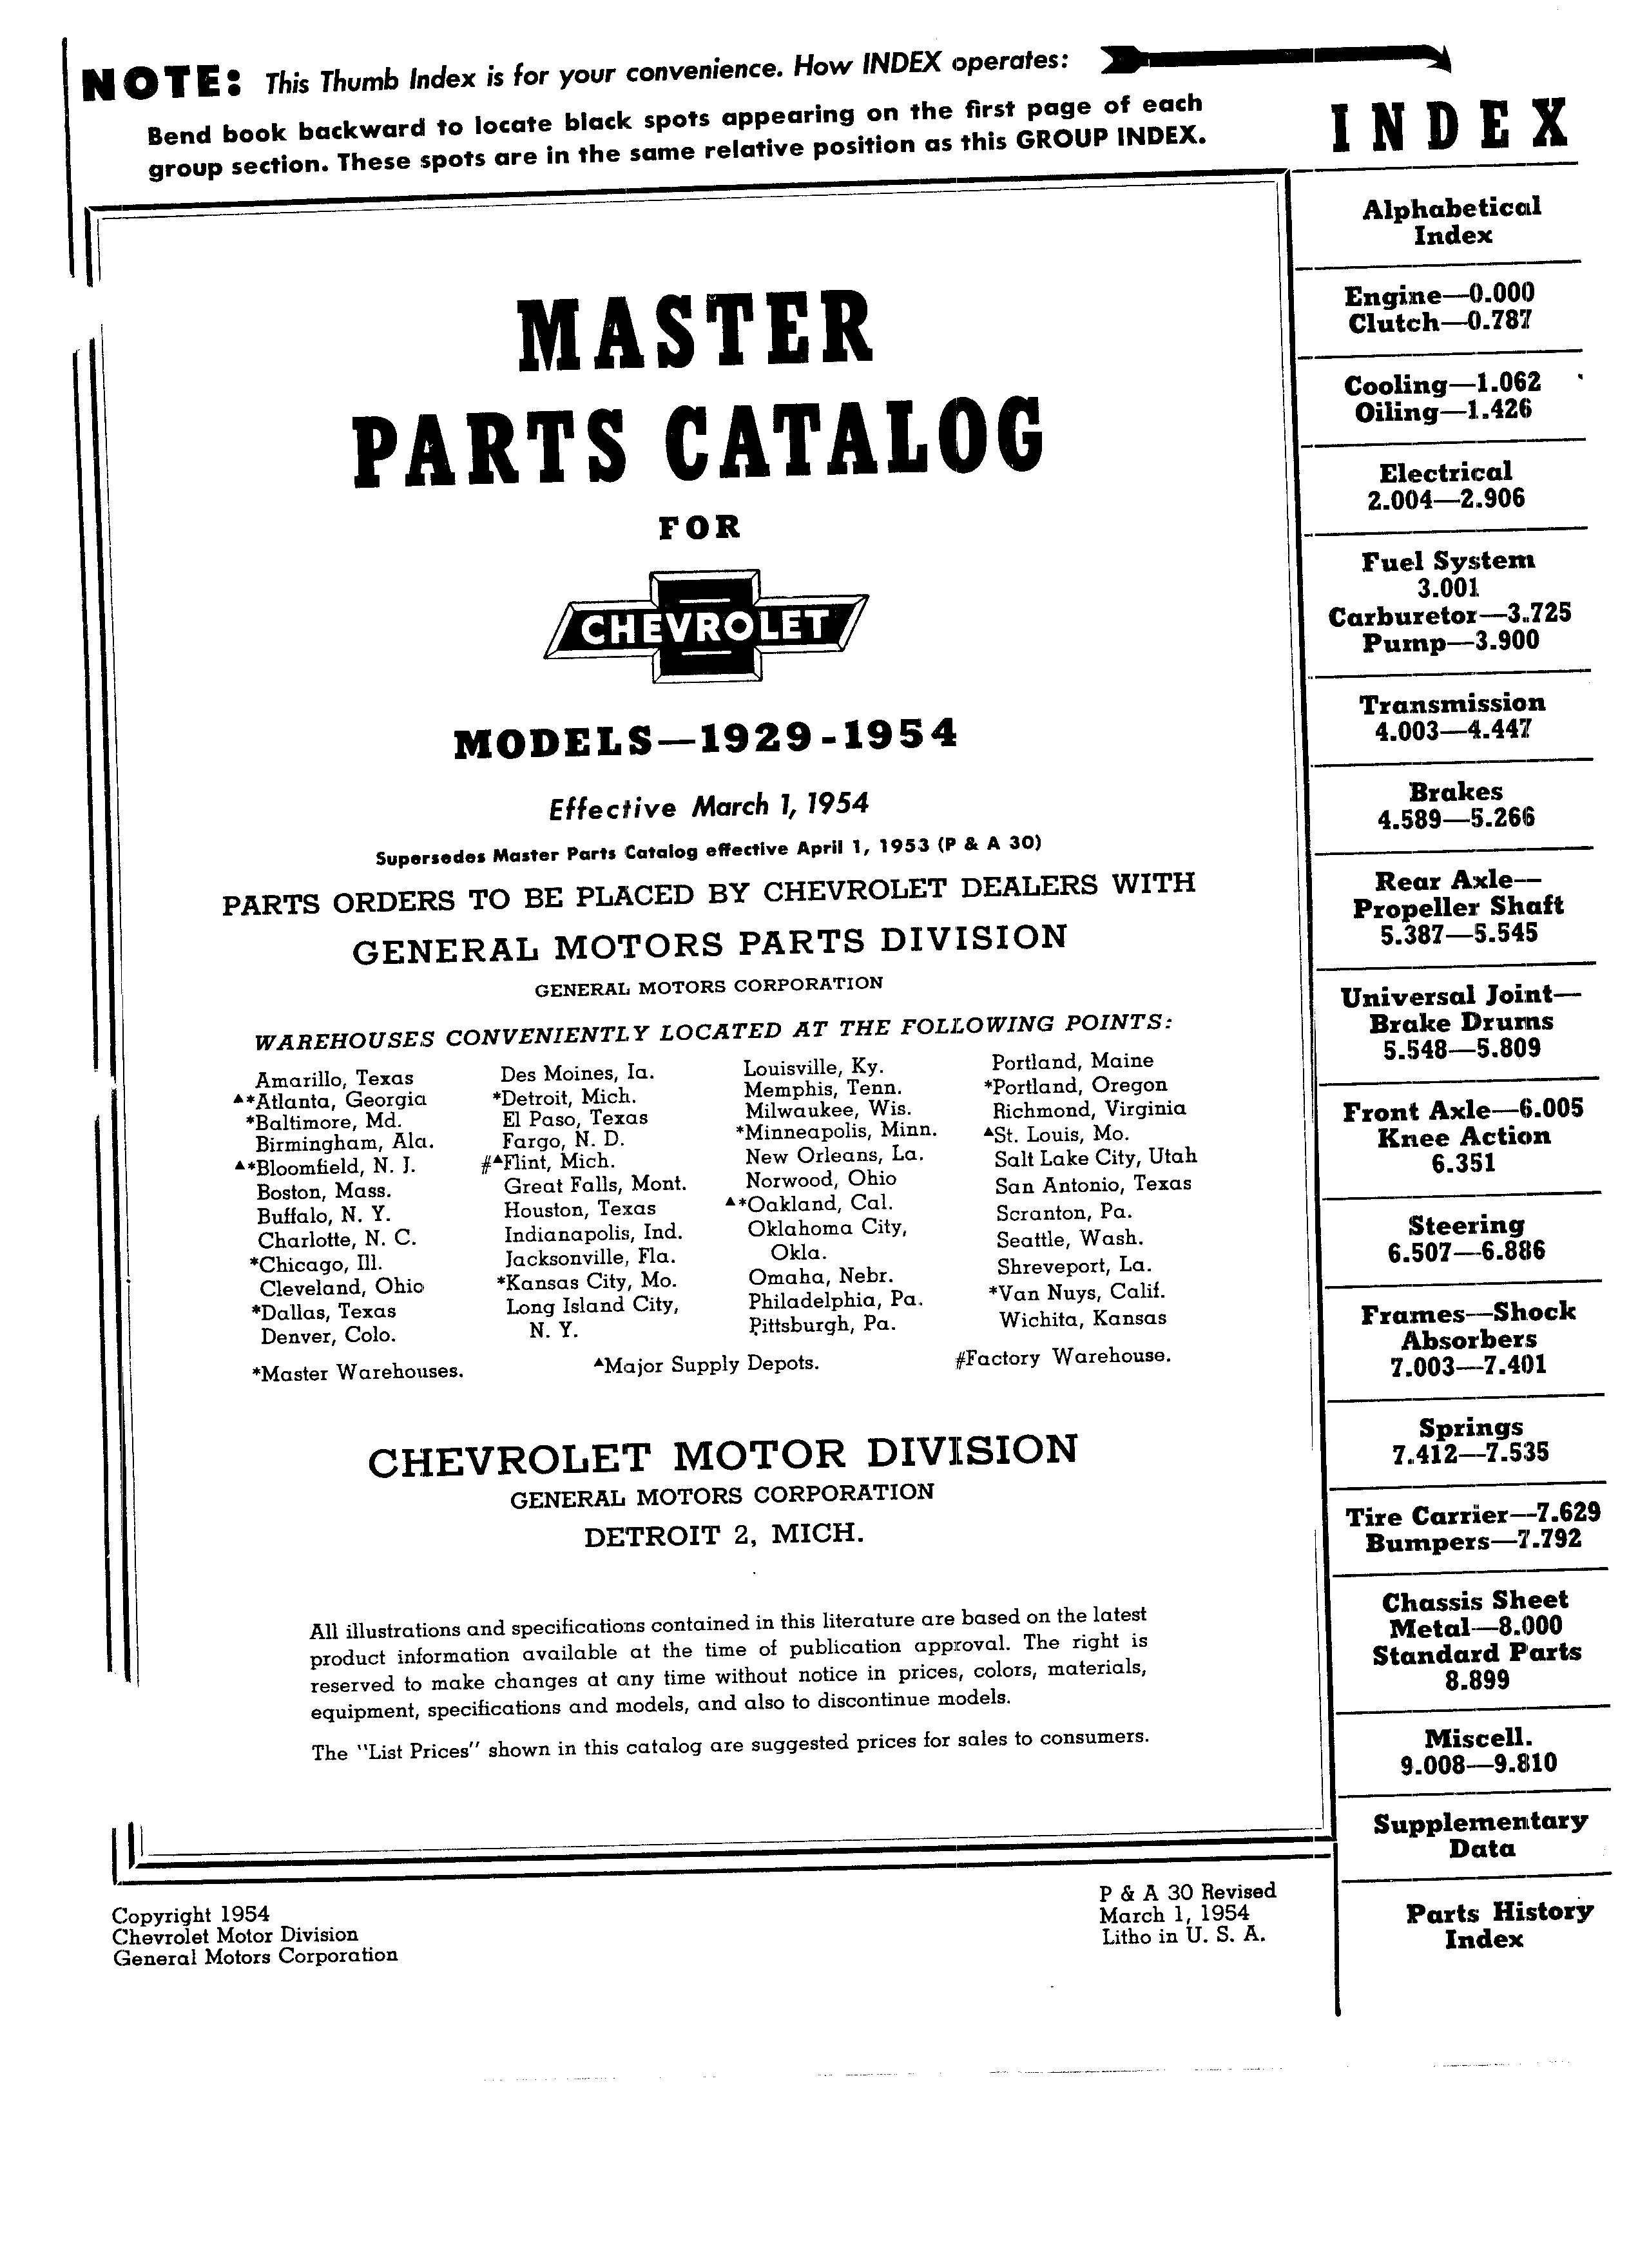 Parts and Accessories Catalog P&A 30 March 1954